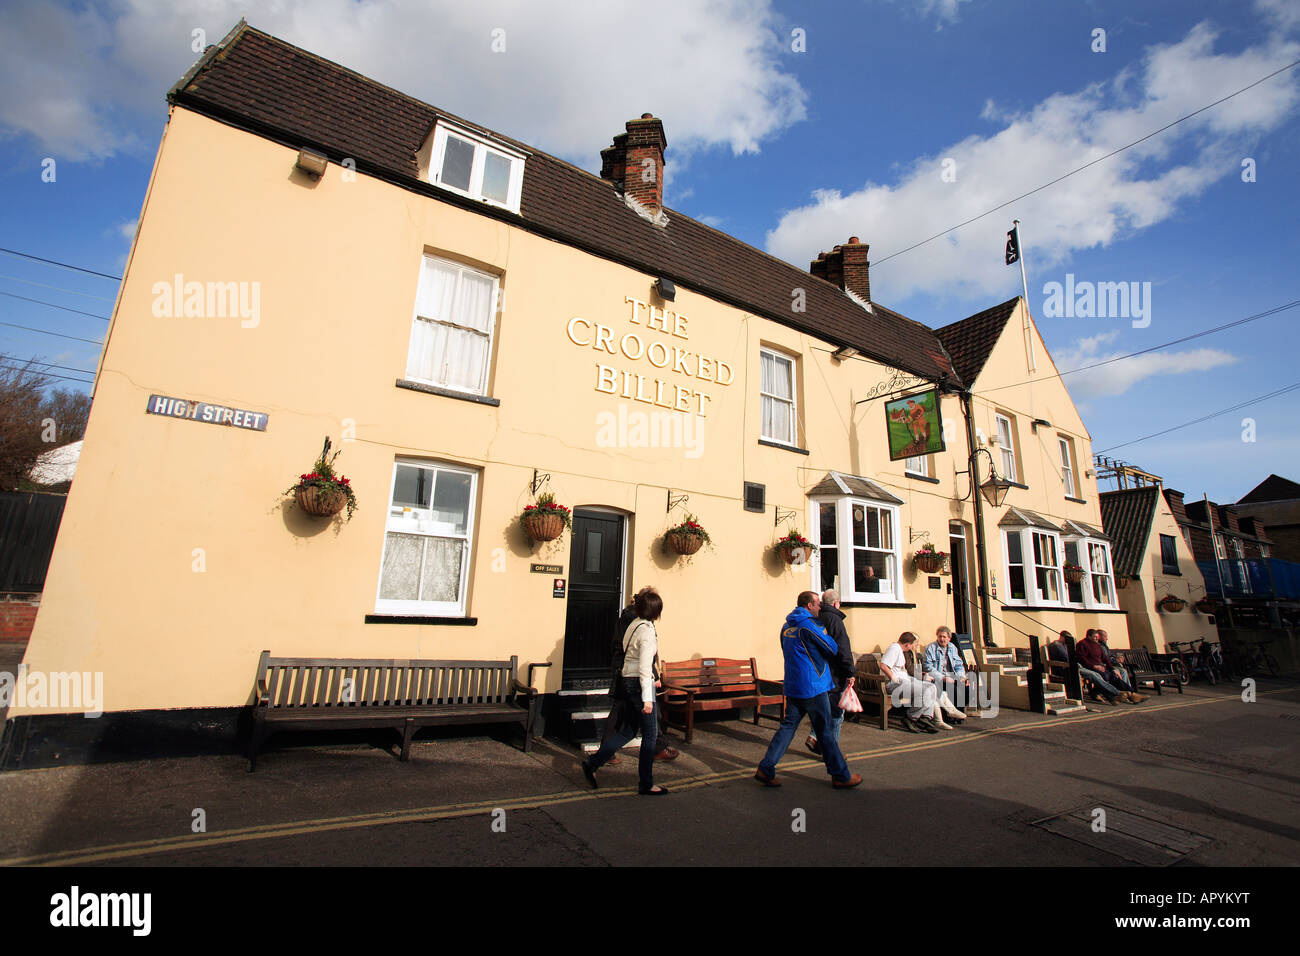 united kingdom essex old leigh on sea the crooked billet public house - Stock Image